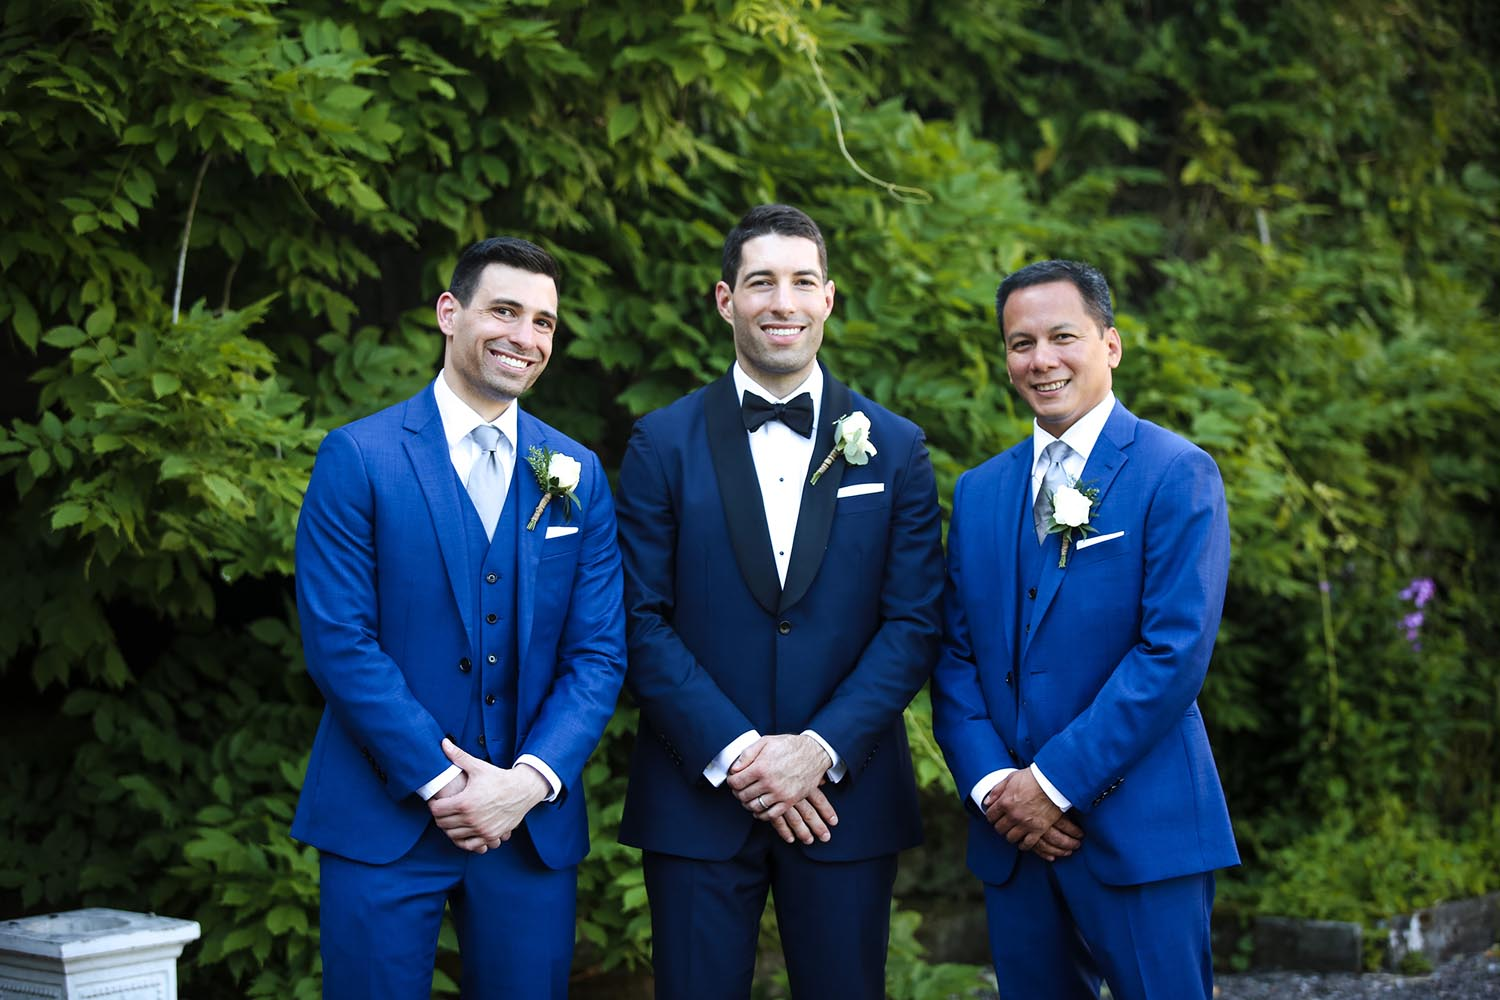 Groom posing with his groomsmen